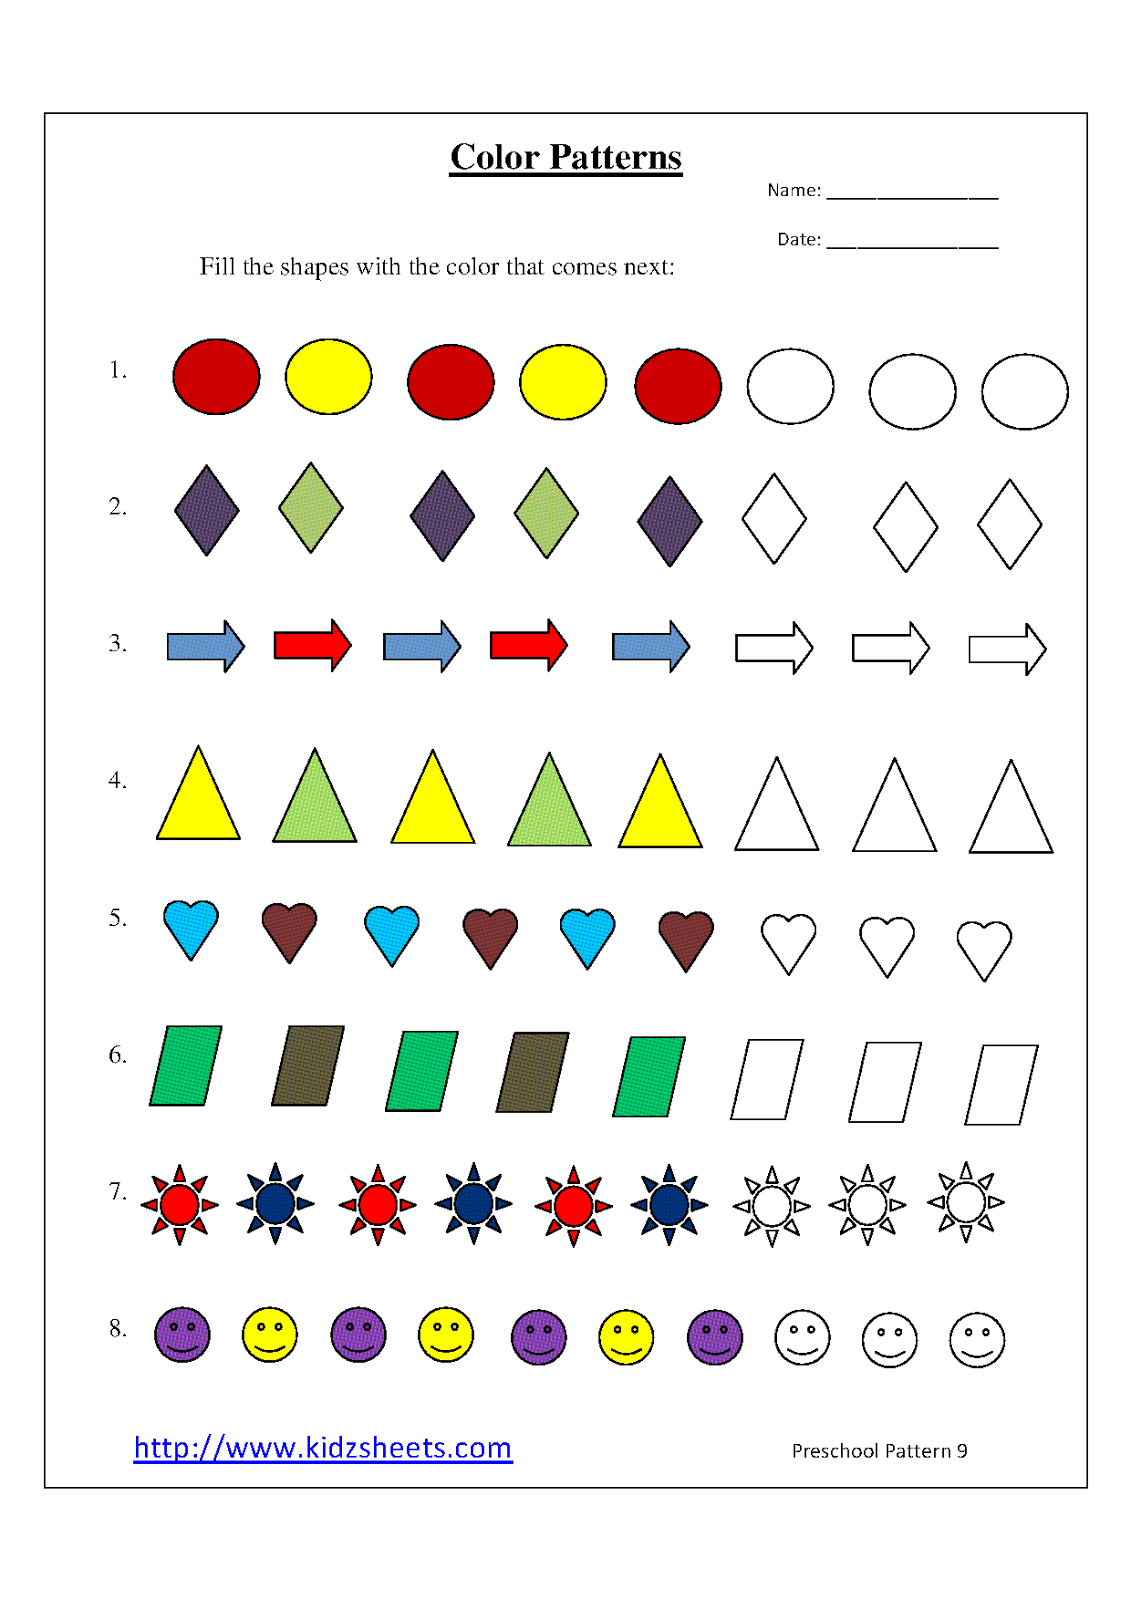 Kidz Worksheets Preschool Color Patterns Worksheet9 – Preschool Pattern Worksheets